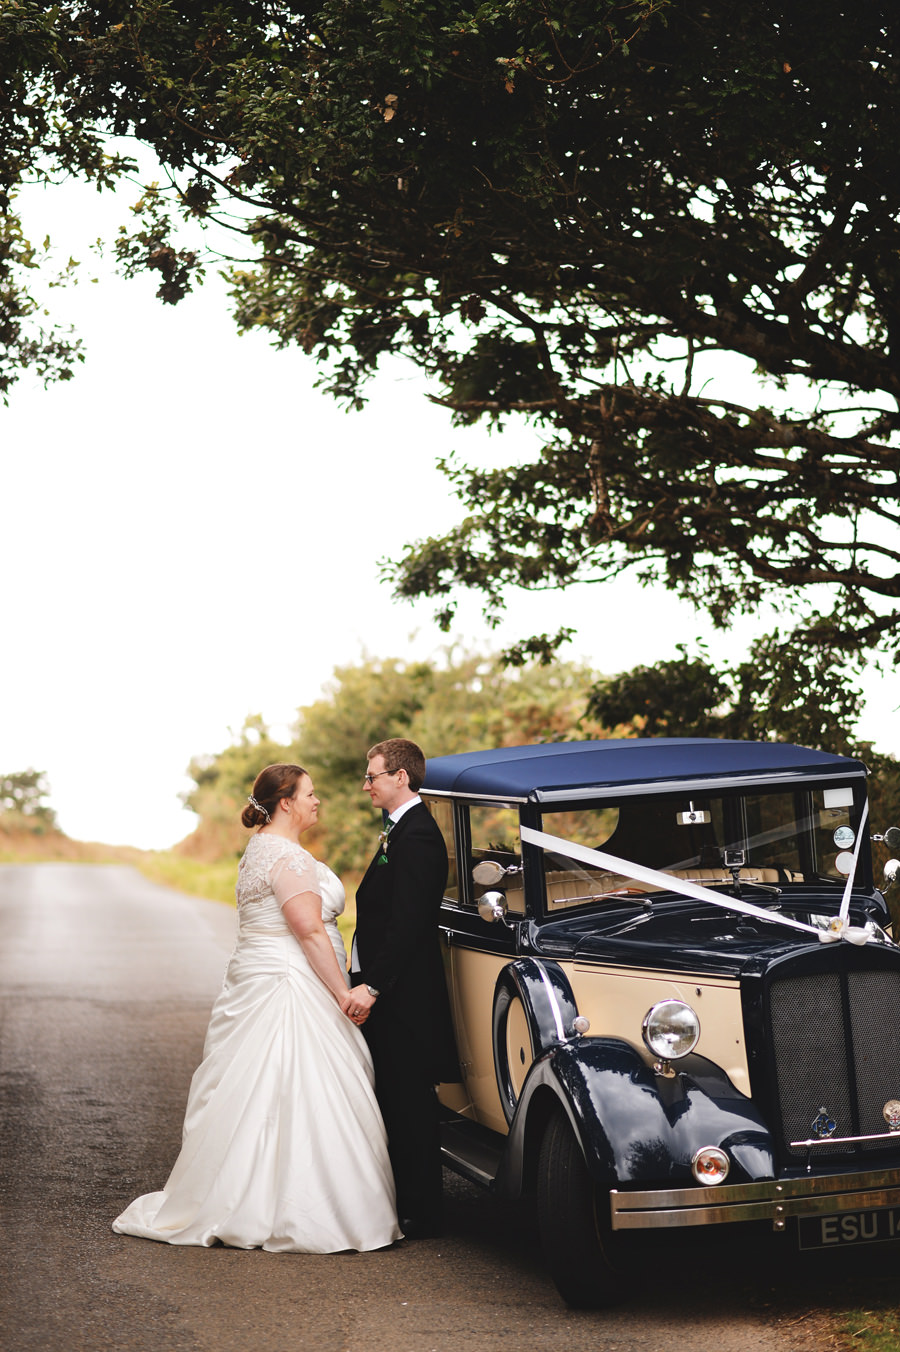 Bride and Groom portrait in Cornwall, England with old timer car - Zácsfalvi Gyula